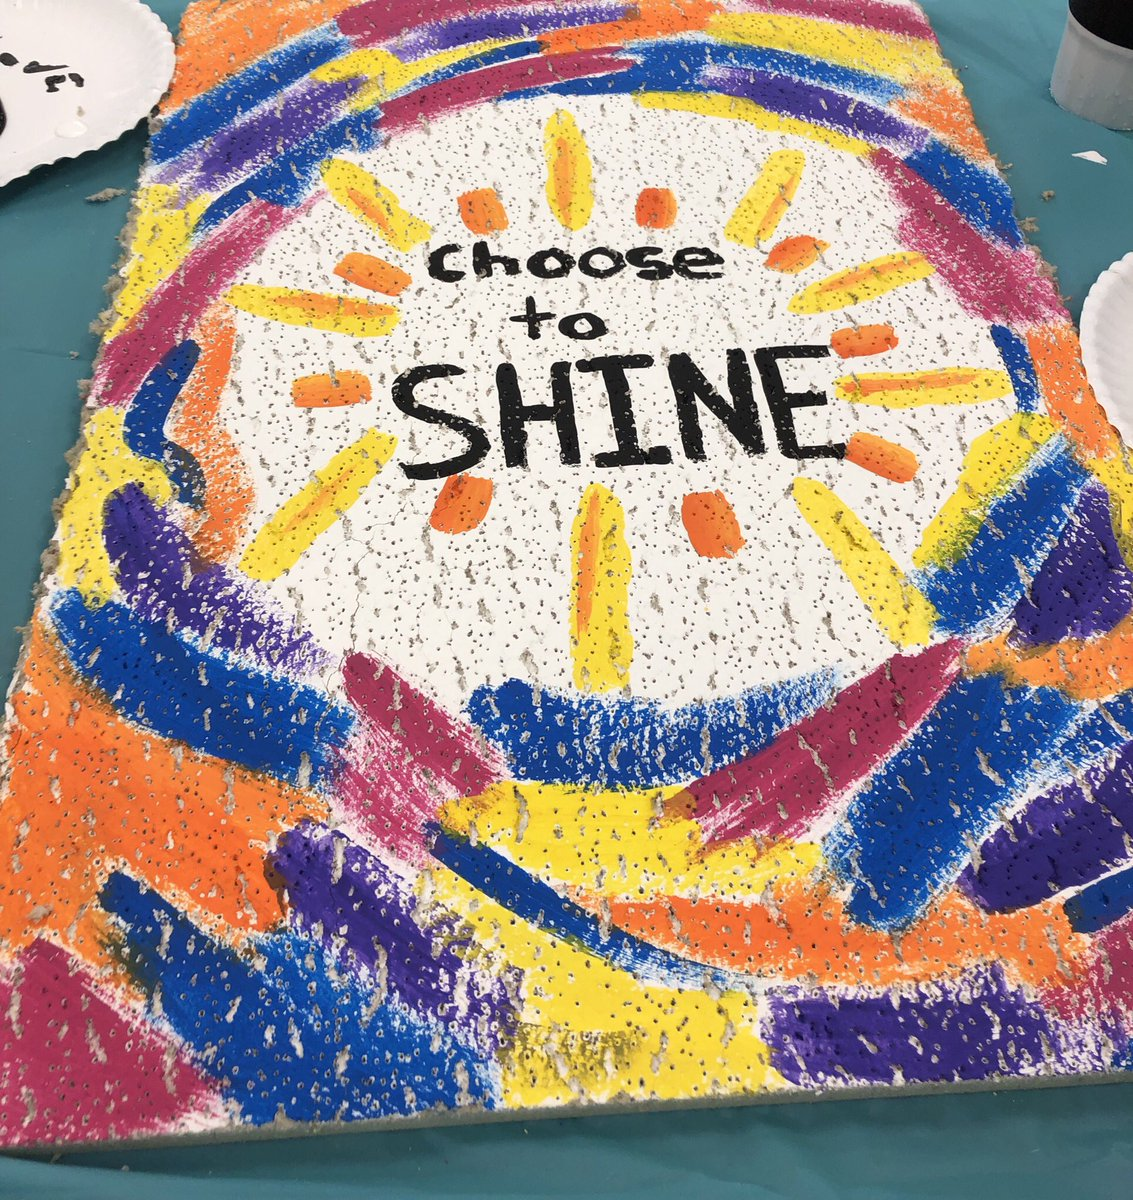 Had fun painting inspirational ceiling tiles today! Choose to SHINE! #helotesbulldogs<br>http://pic.twitter.com/aAHs35E6Vk